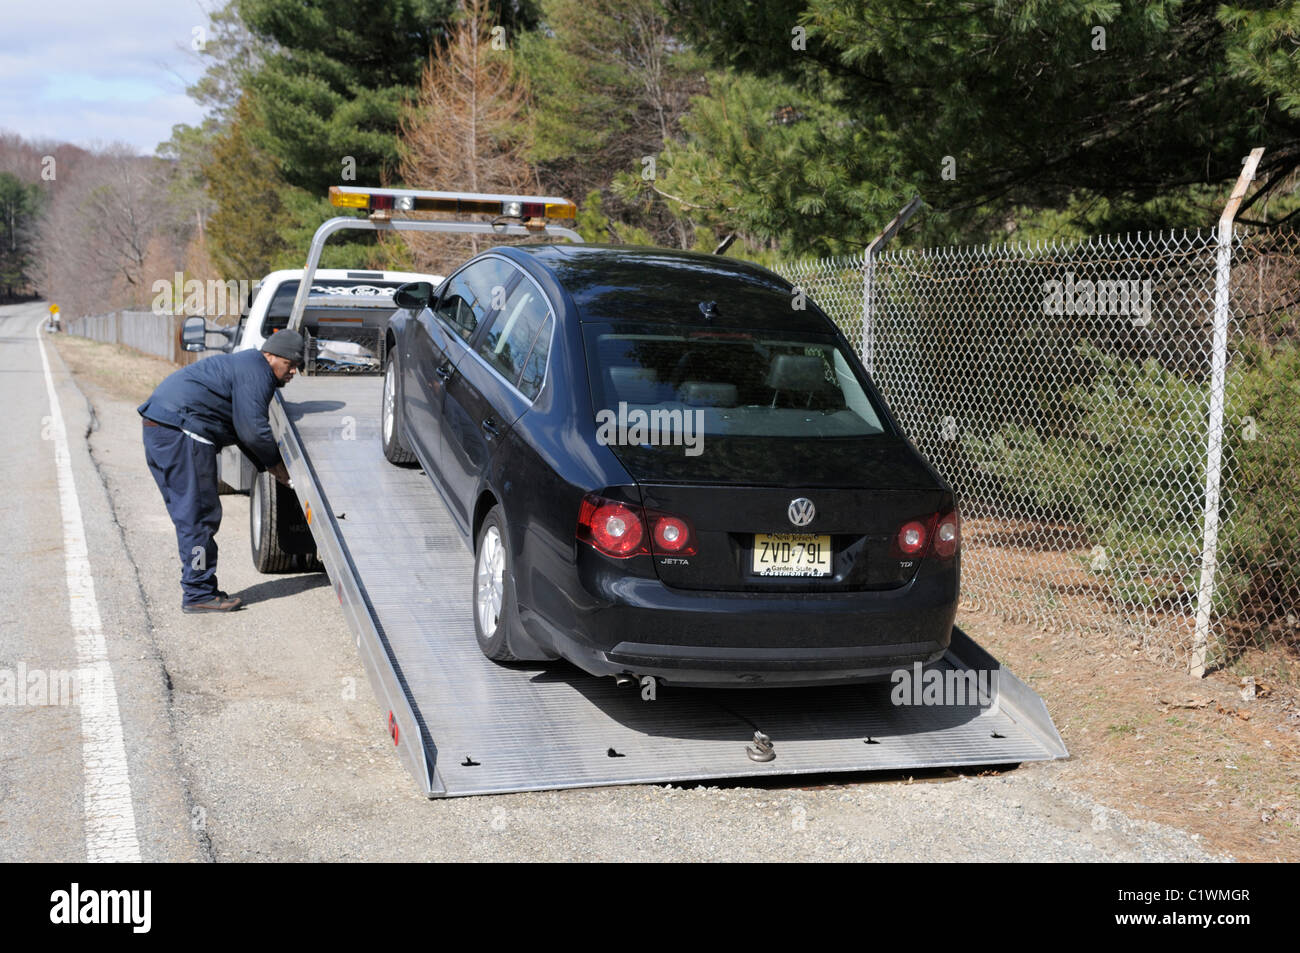 Broken down car being loaded onto a flatbed wrecker truck